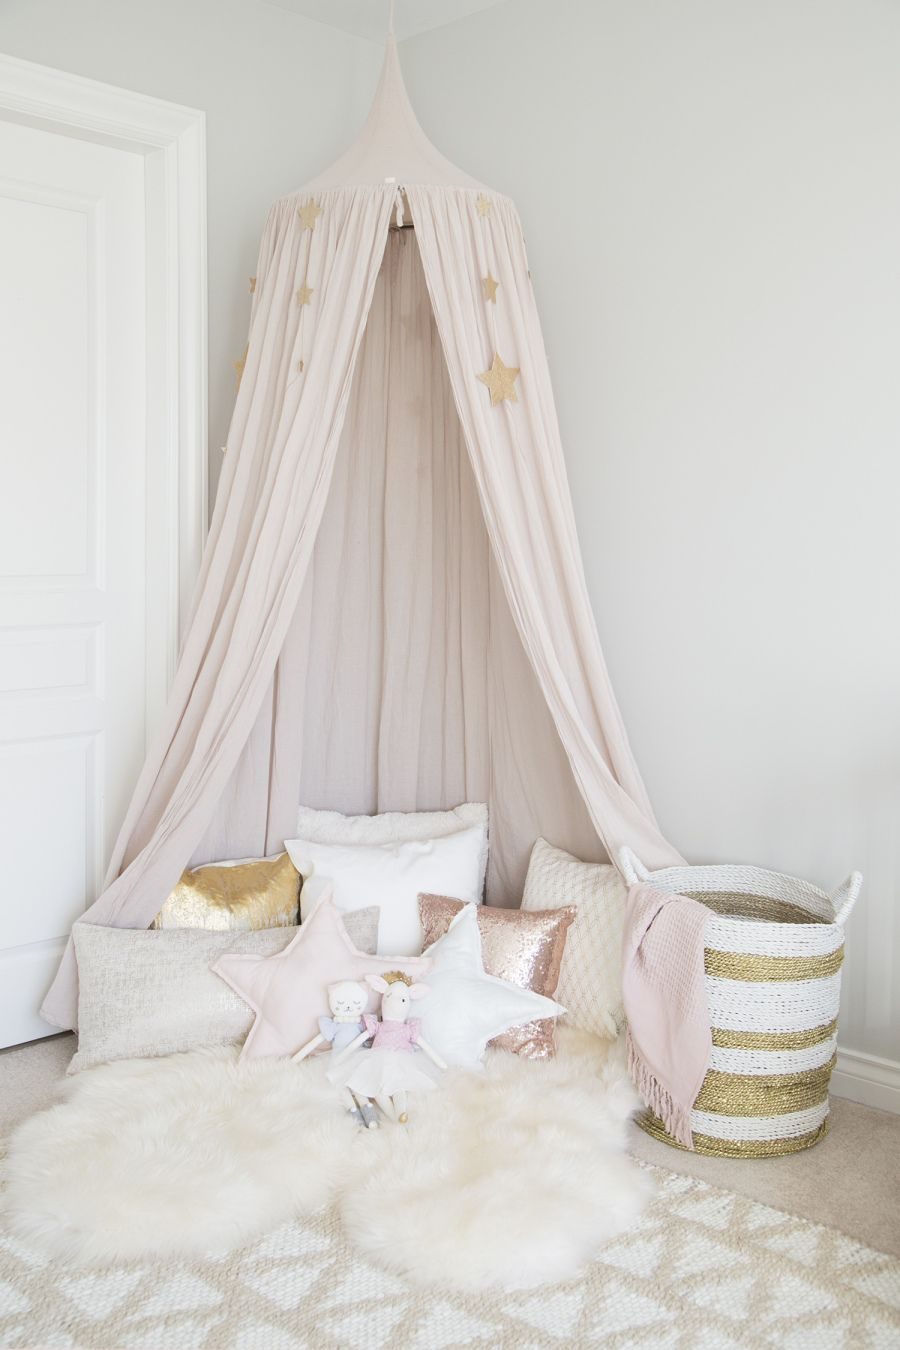 Pantone S Rose Quartz Makes For The Prettiest Little Girl S Room